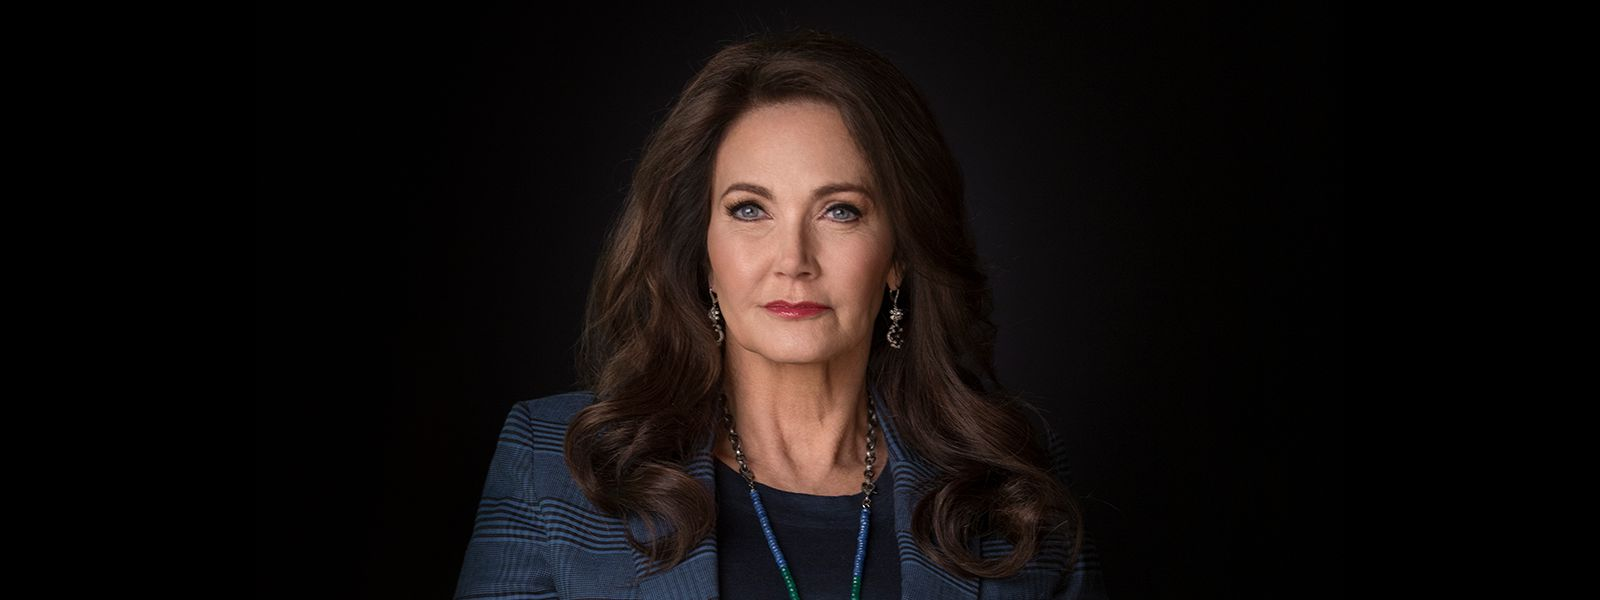 shoc-102-linda-carter-wonder-woman-800×600